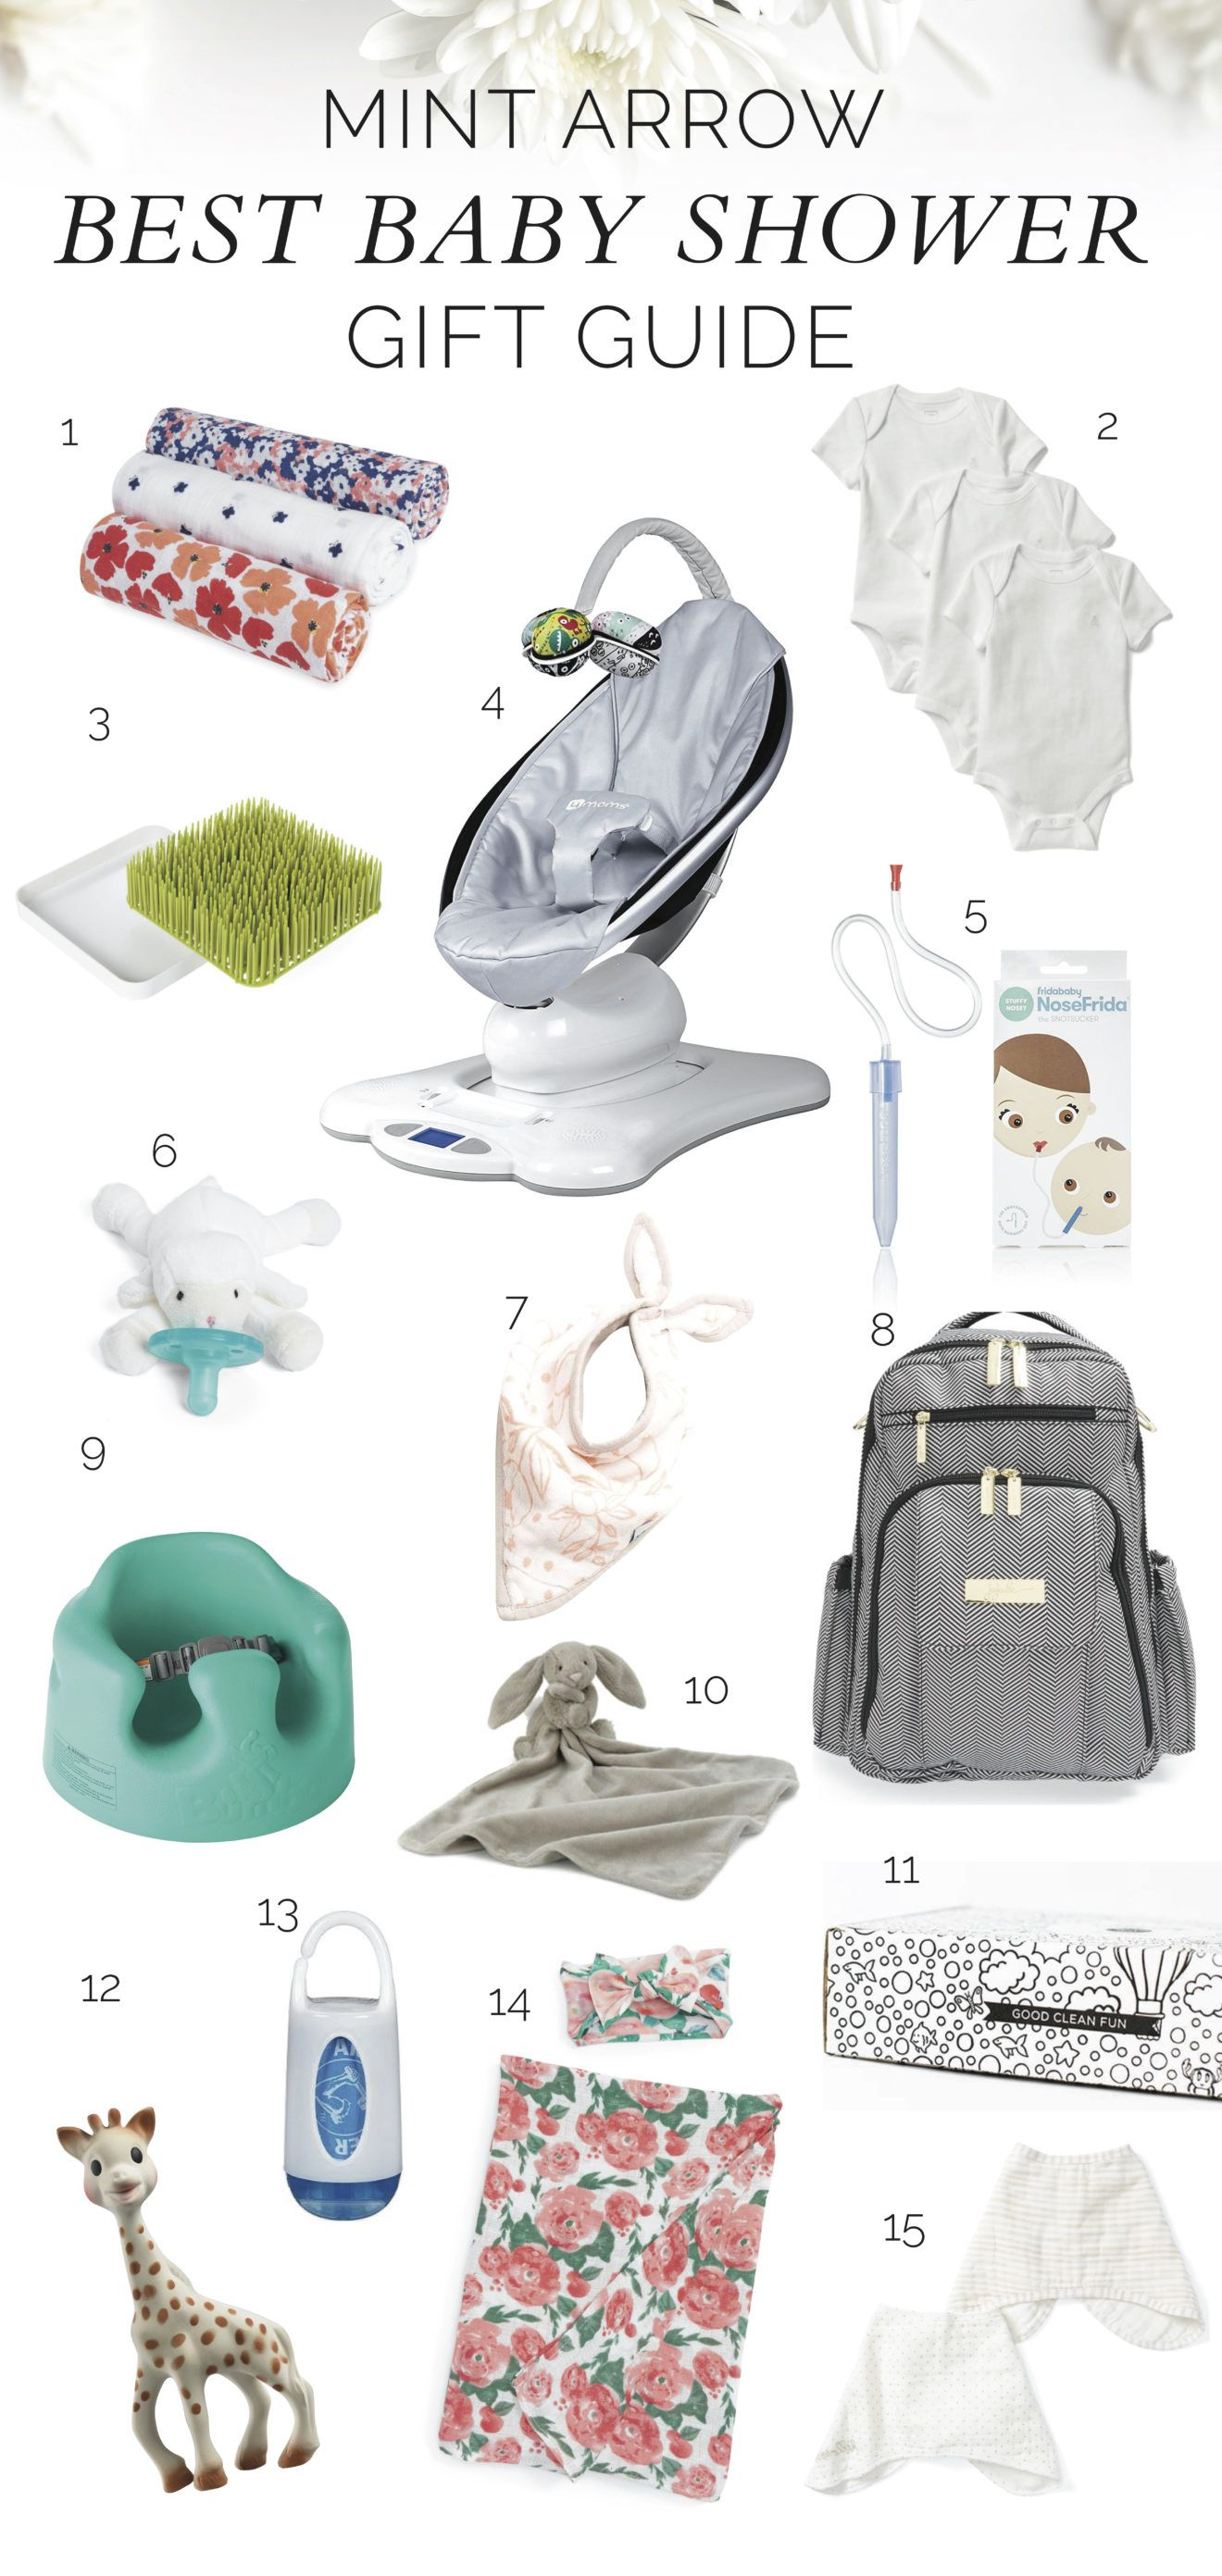 The best baby shower gifts under $15 | ultimate baby gift guide.